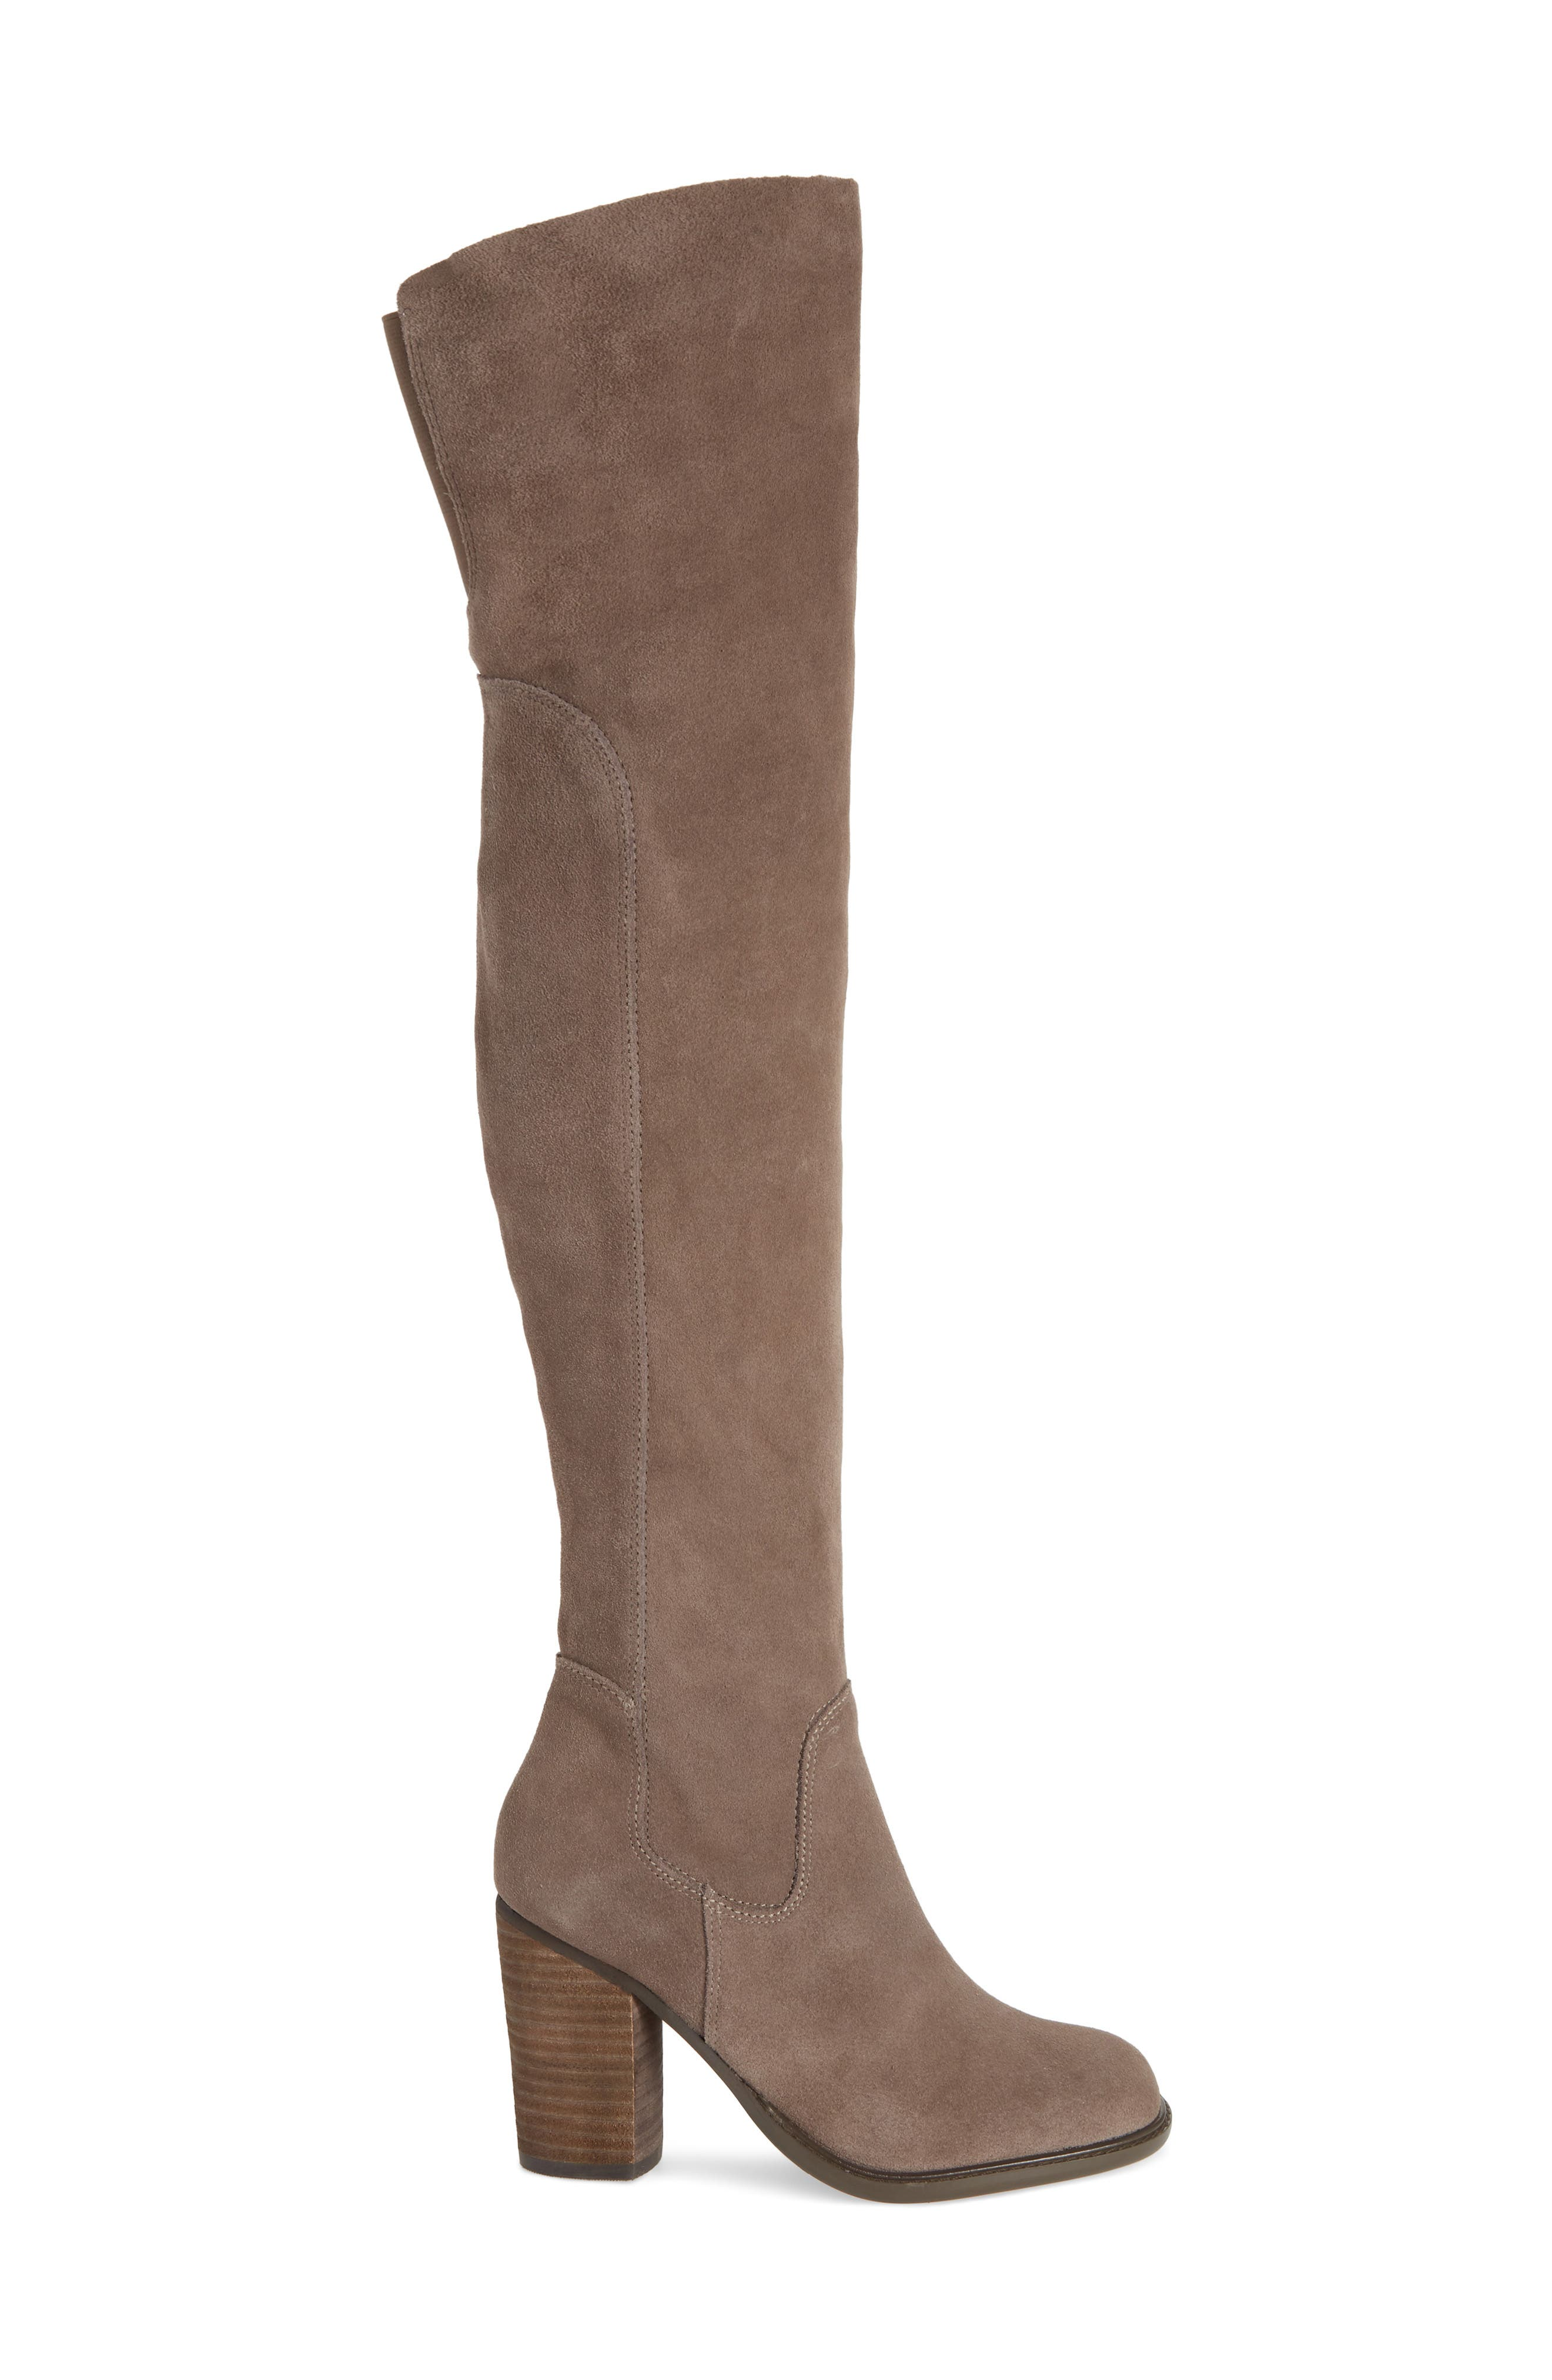 Logan Over the Knee Boot,                             Alternate thumbnail 3, color,                             WARM GREY SUEDE